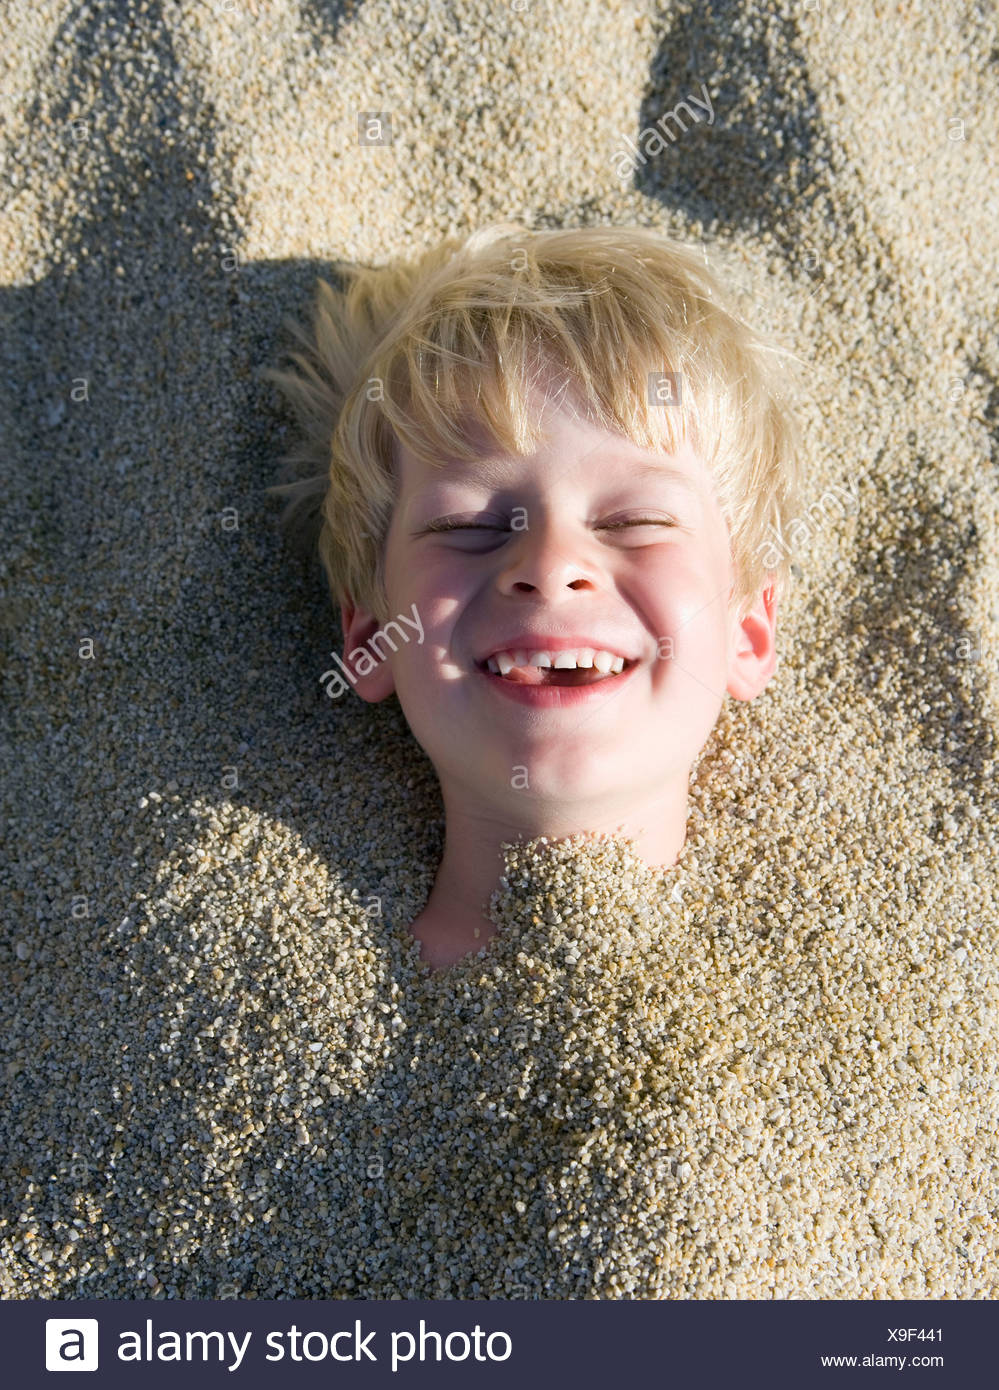 Young boy buried in the sand laughing. Stock Photo